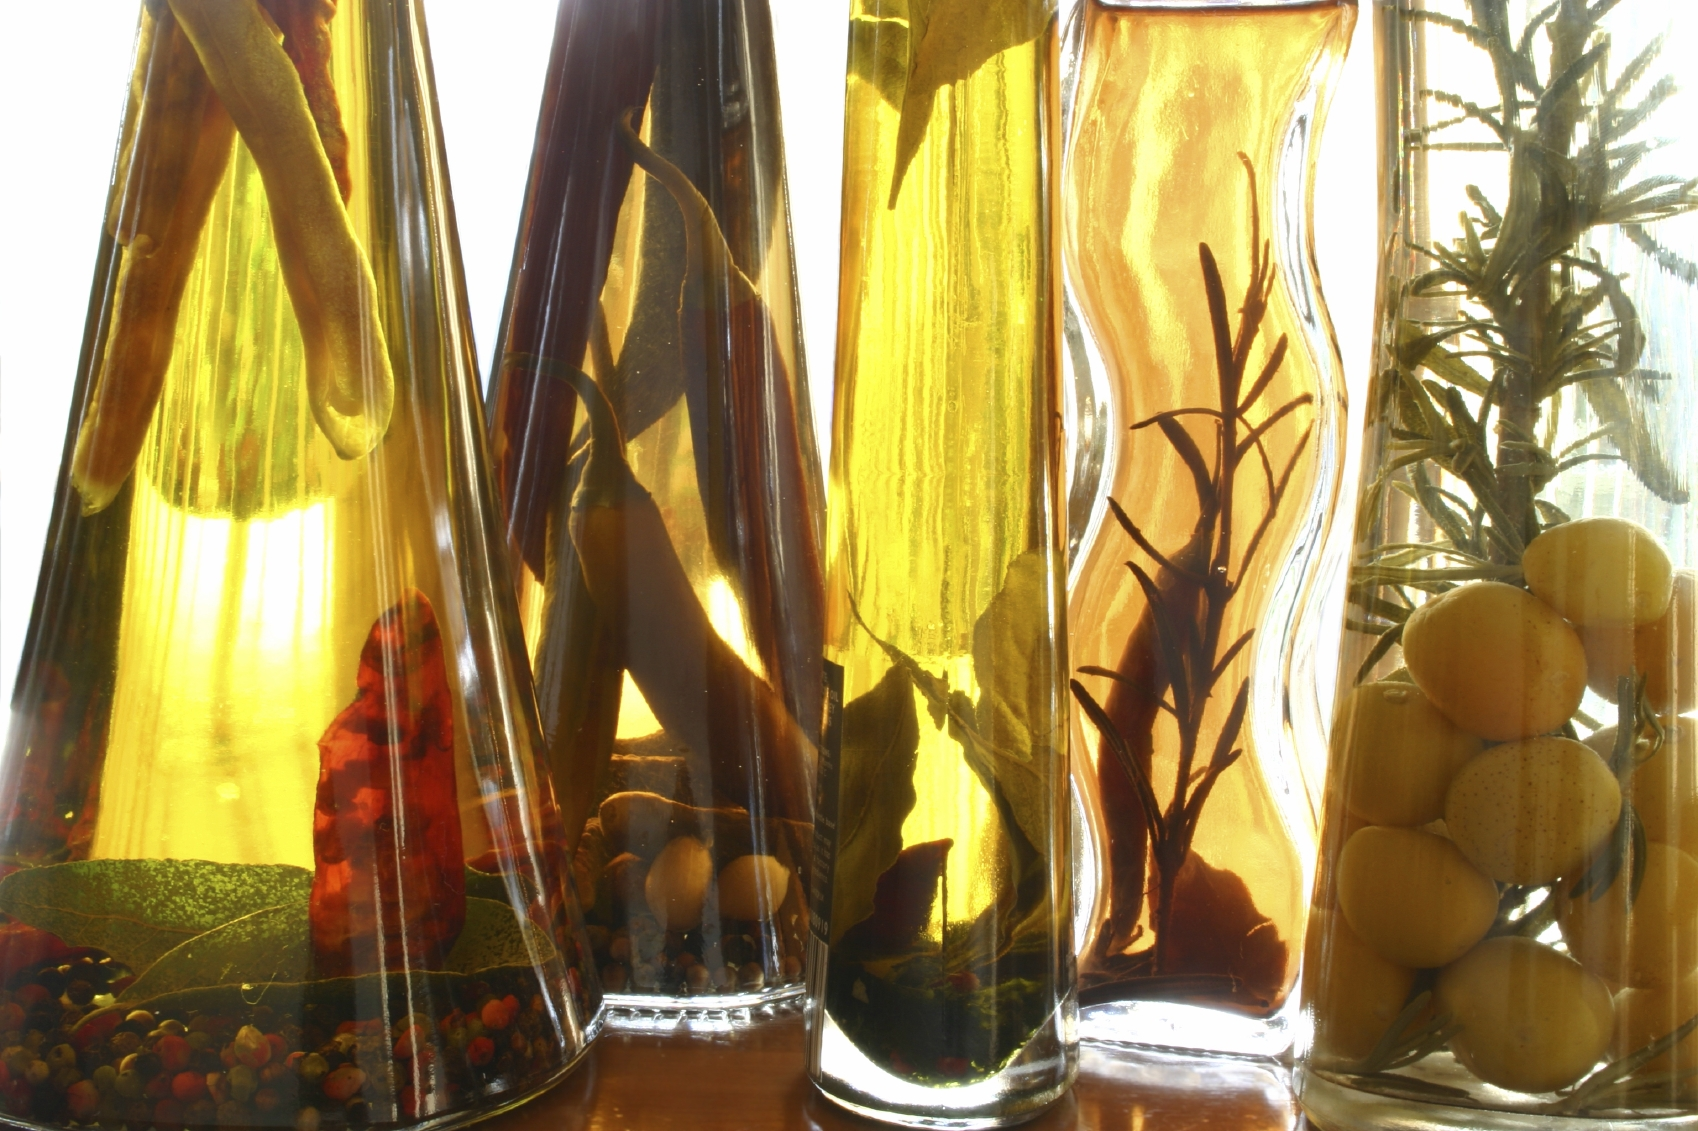 Olive oil has healthy fats that will keep your mood up